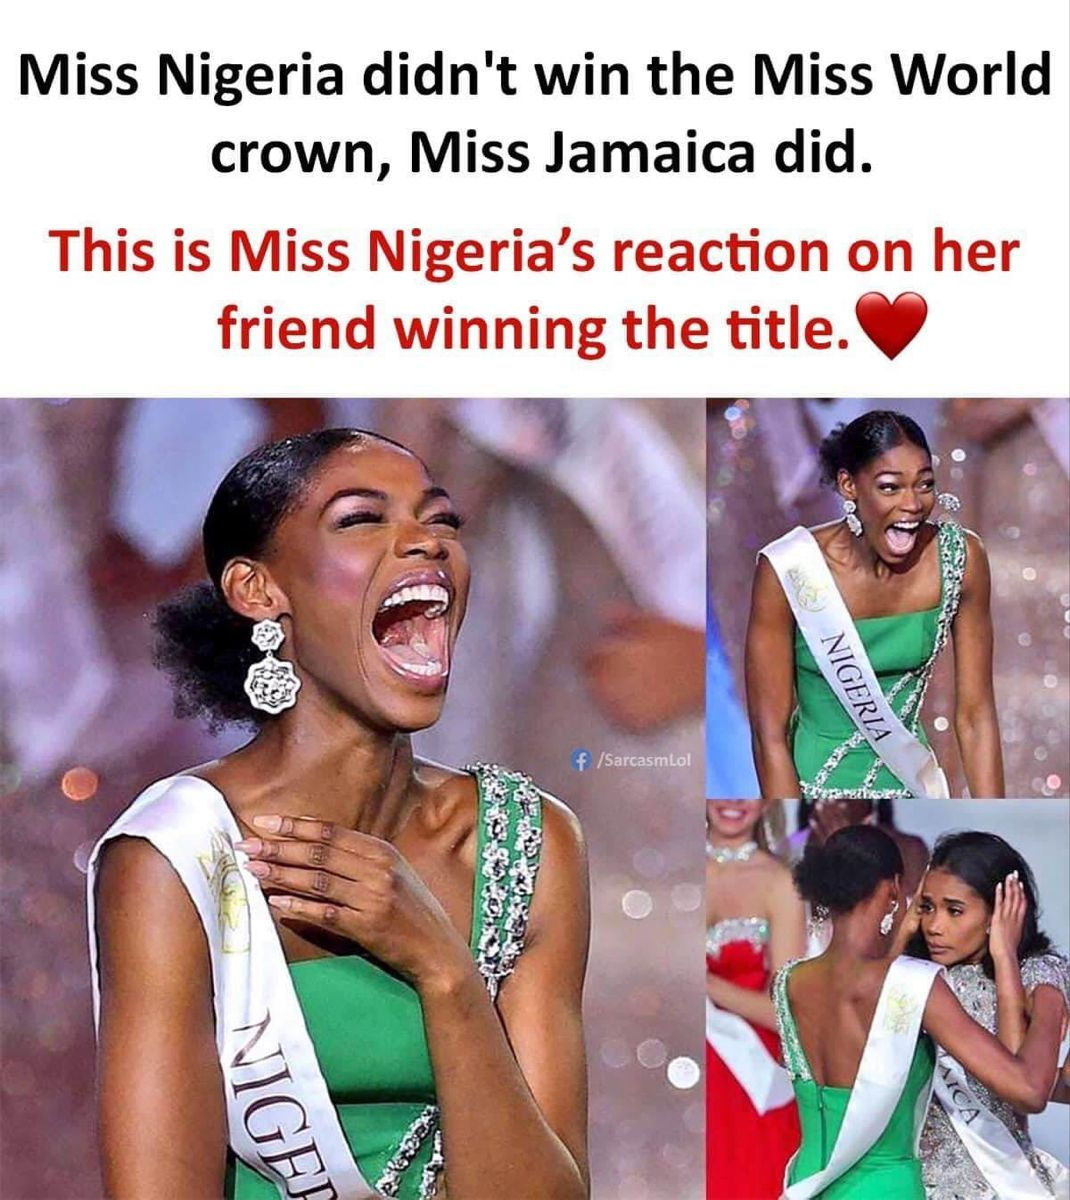 Pin By Faith Fowler On A Books And Quotes Real Friendship Miss Nigeria Funny Memes